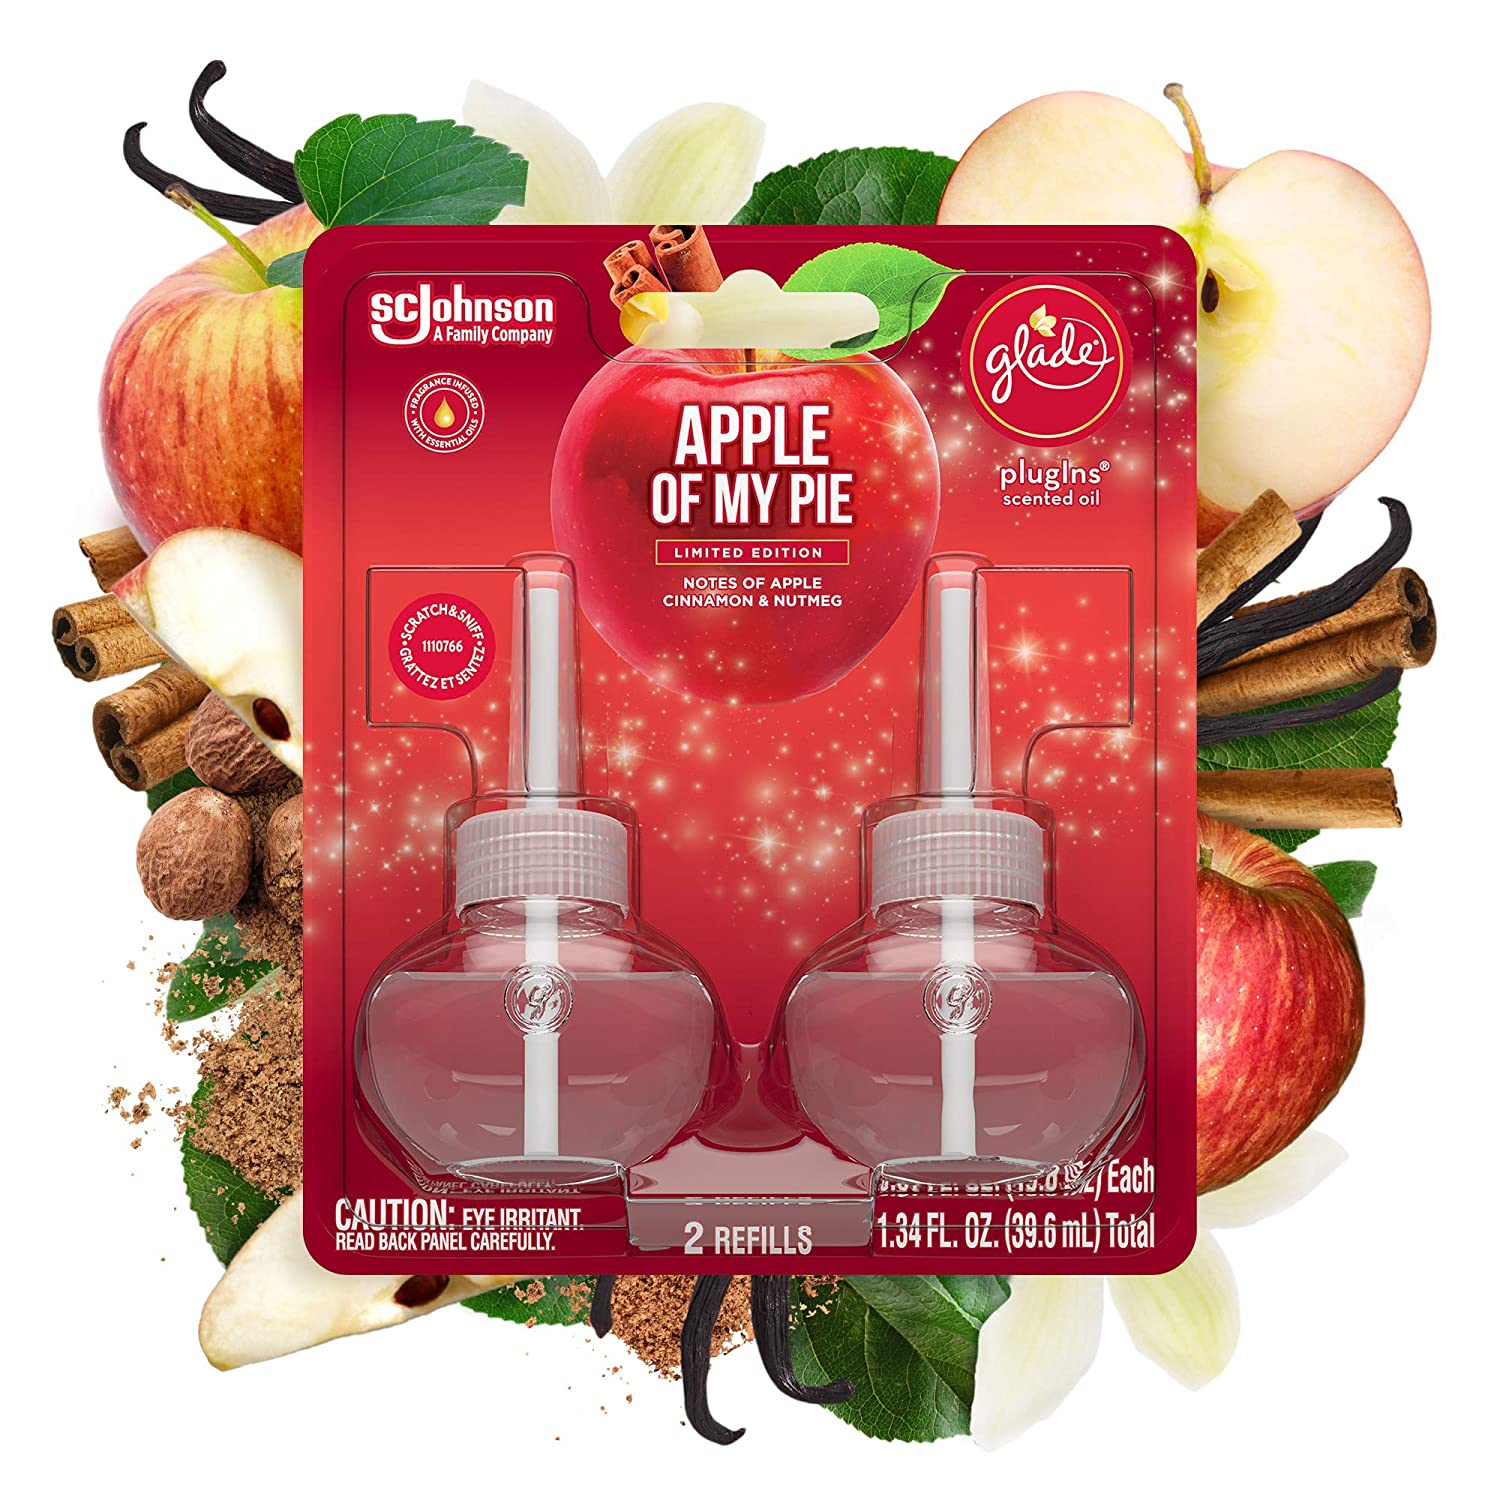 Glade PlugIns Refills Air Freshener, Scented and Essential Oils for Home and Bathroom, Apple of My Pie, 1.34 Fl Oz, 2 Count